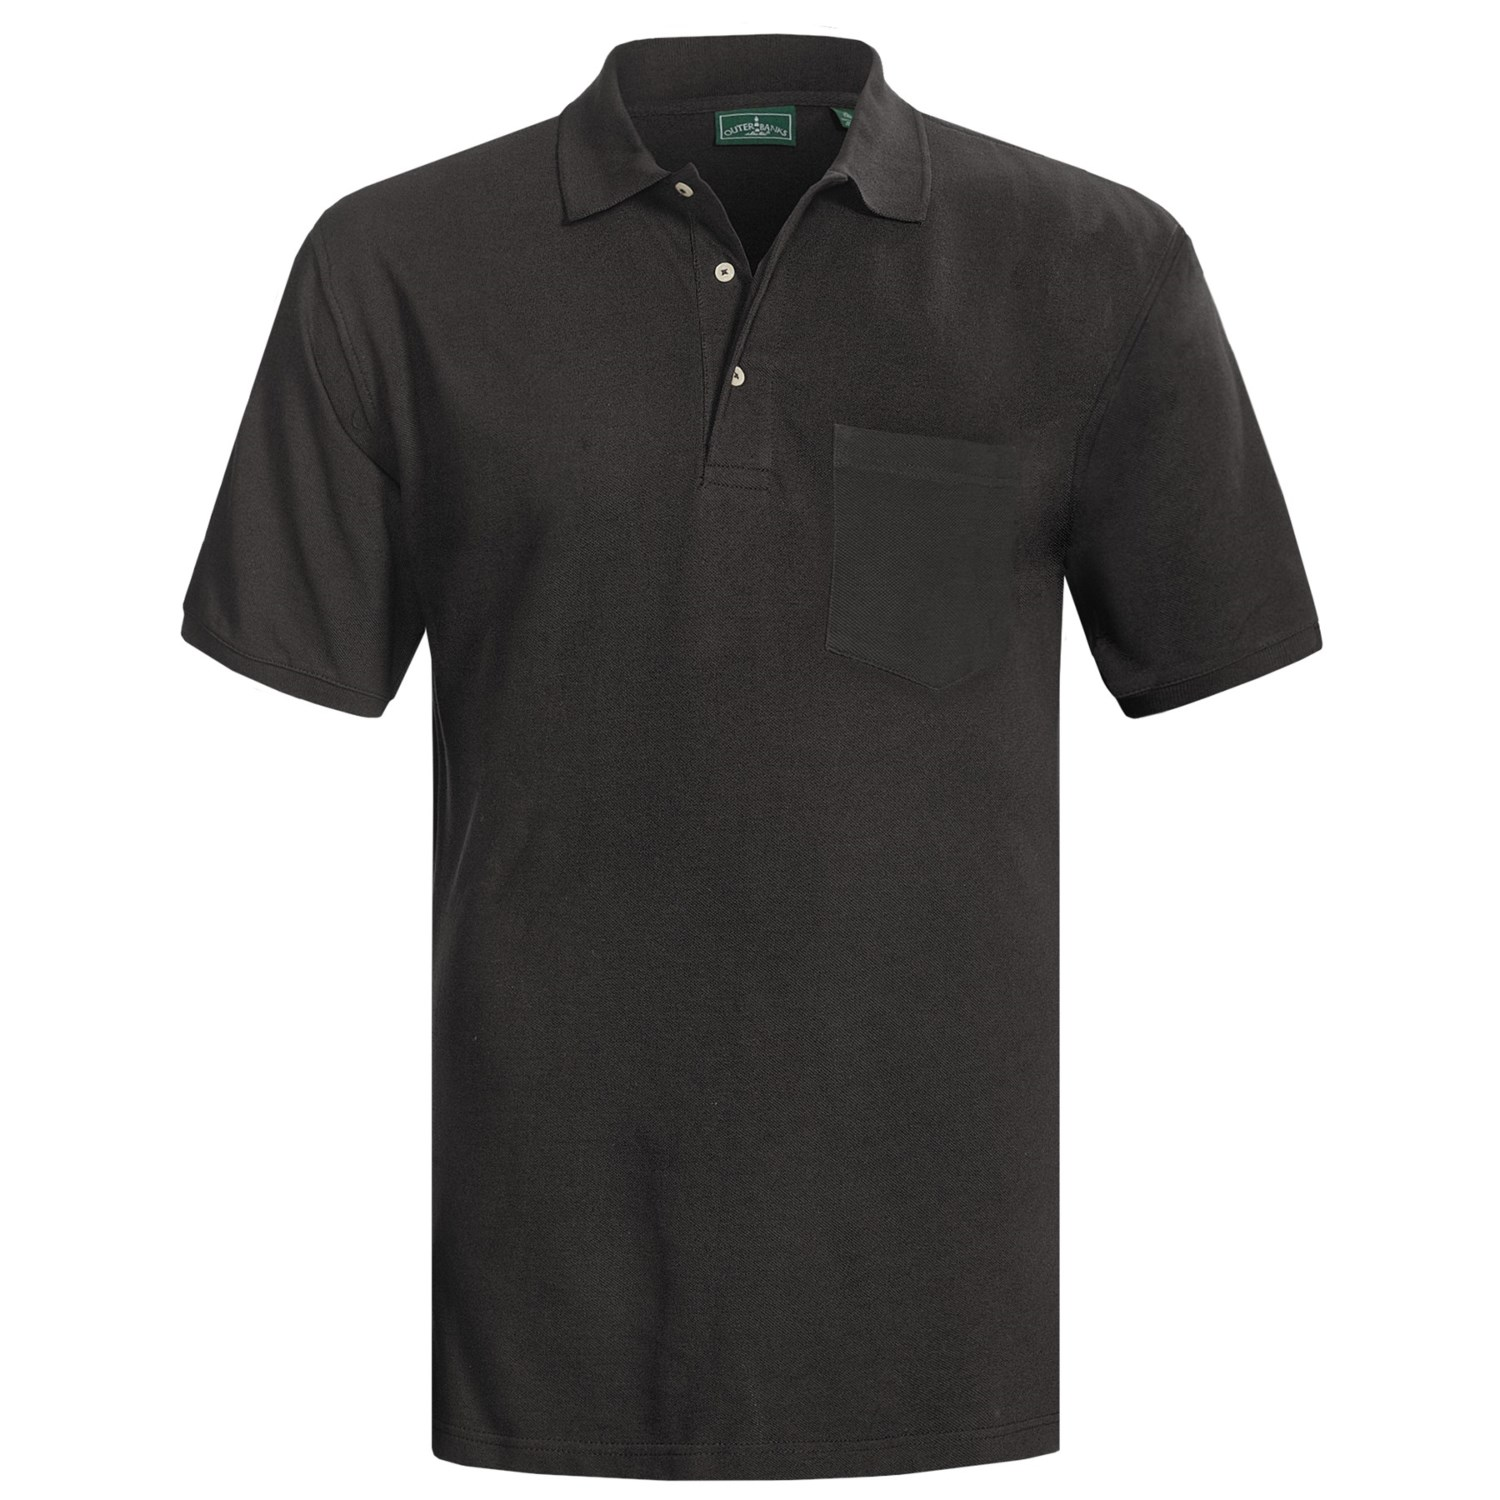 Outer banks ultimate cotton polo shirt for men 5191a for Men s cotton polo shirts with pocket